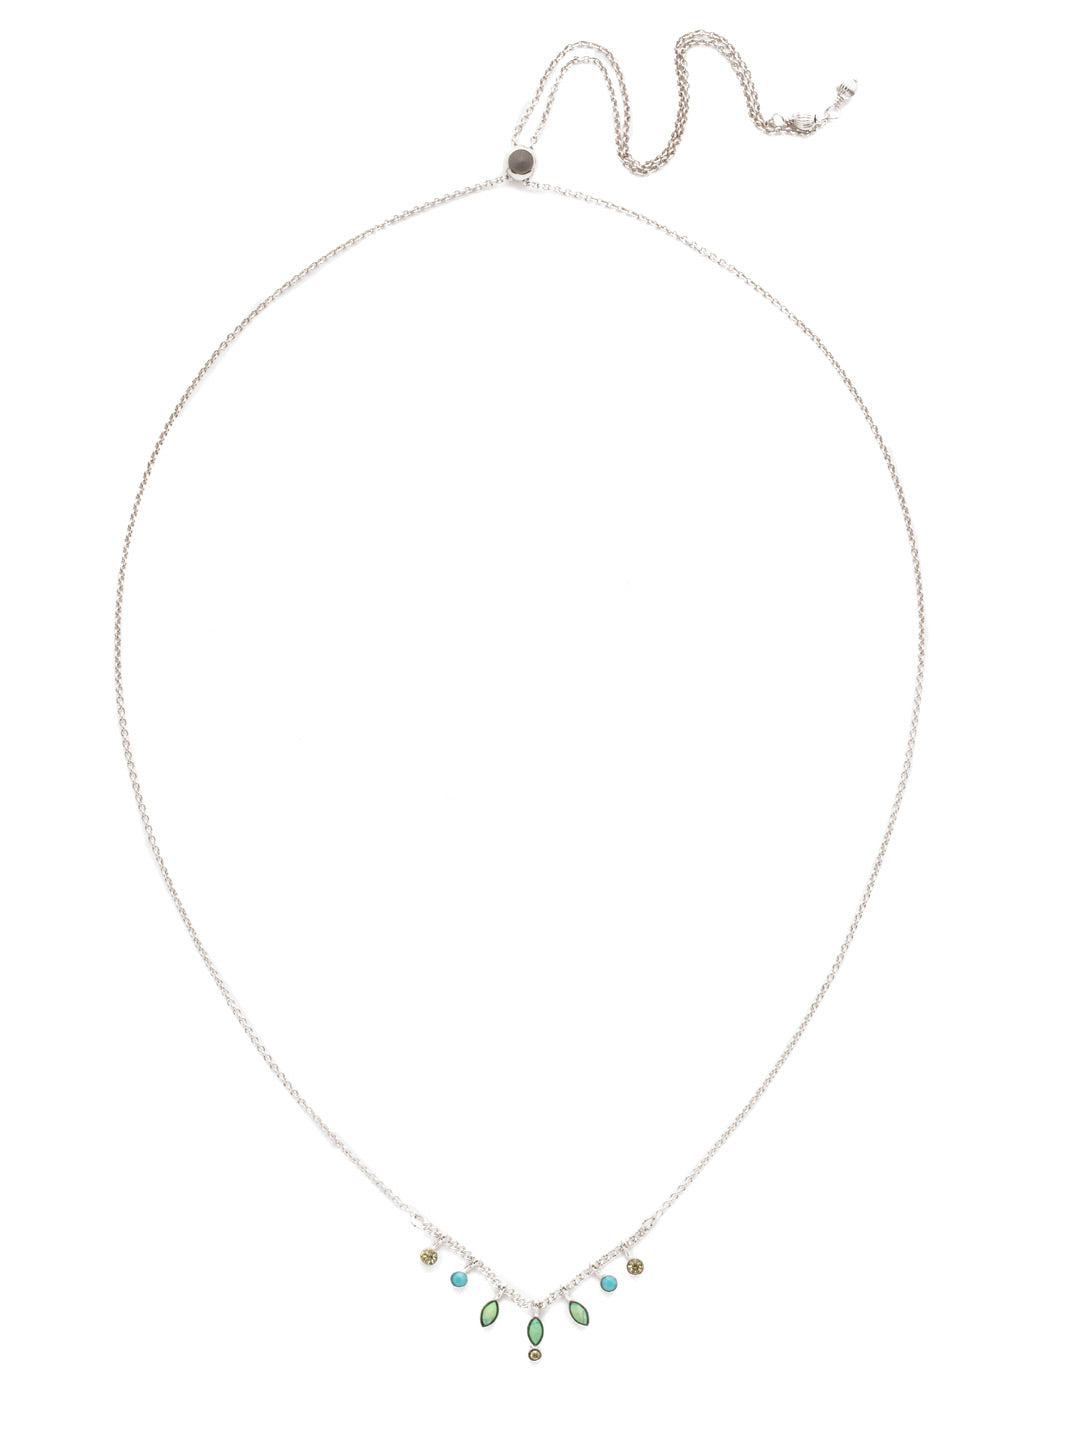 Seaglass Classic Necklace - NEH16RHTHT